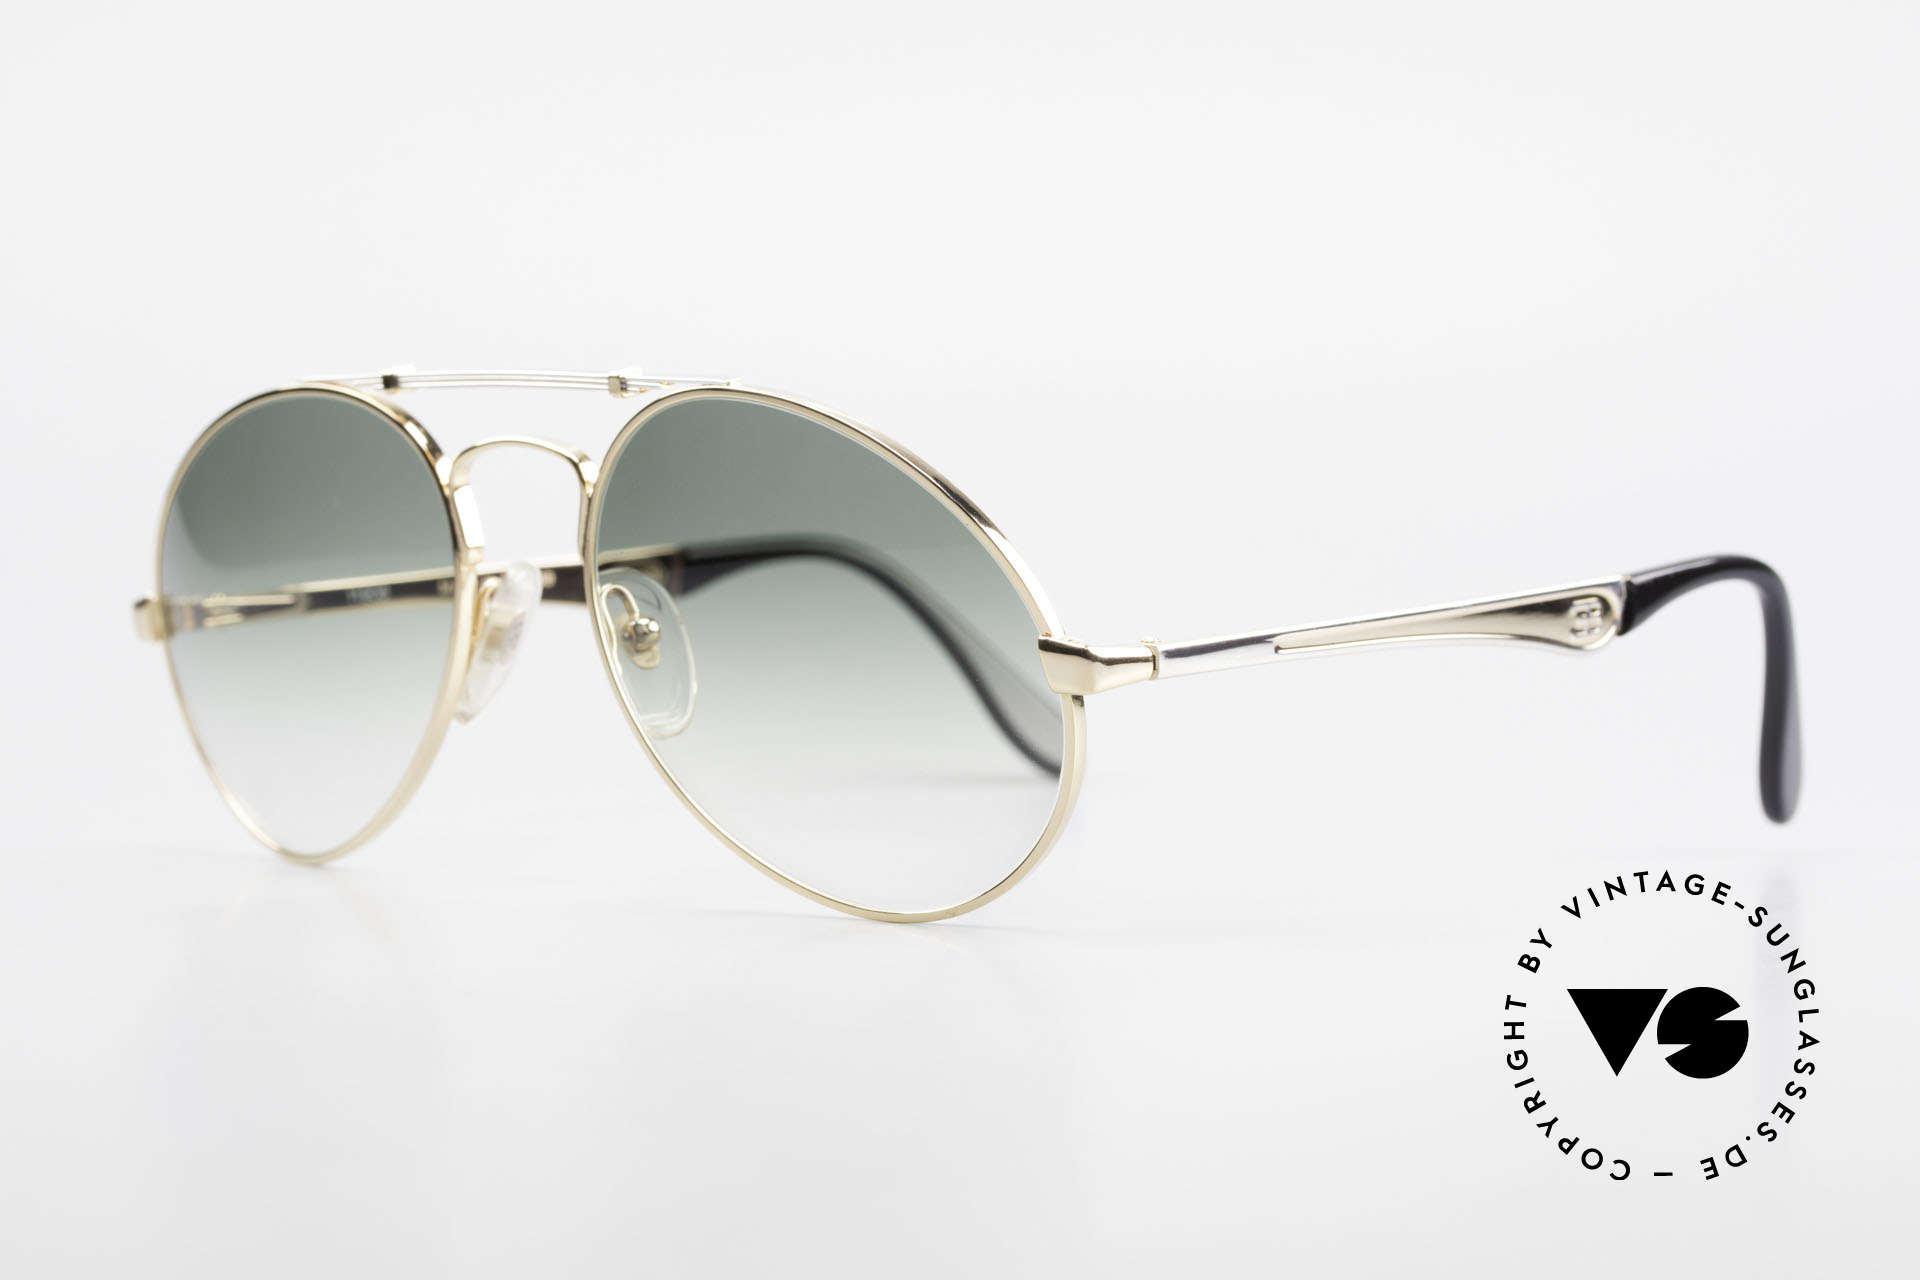 Bugatti 11908 80's Luxury Sunglasses XLarge, no tear drop, no aviator, but just Bugatti shape, Made for Men